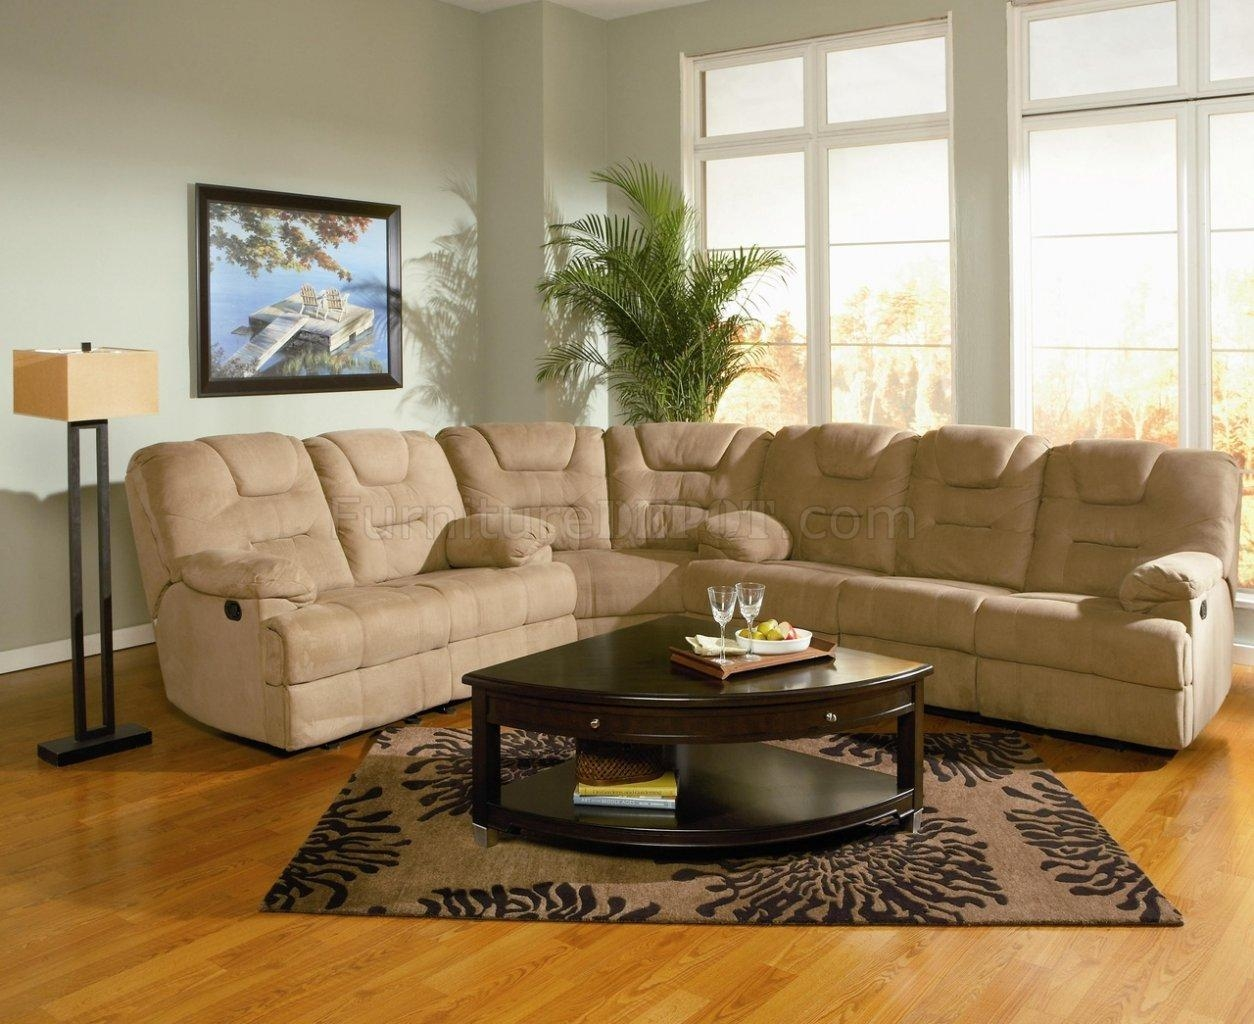 Modern Microfiber Reclining Sectional Sofa 600351 Mocha Throughout Sofas With High Backs (Image 13 of 20)